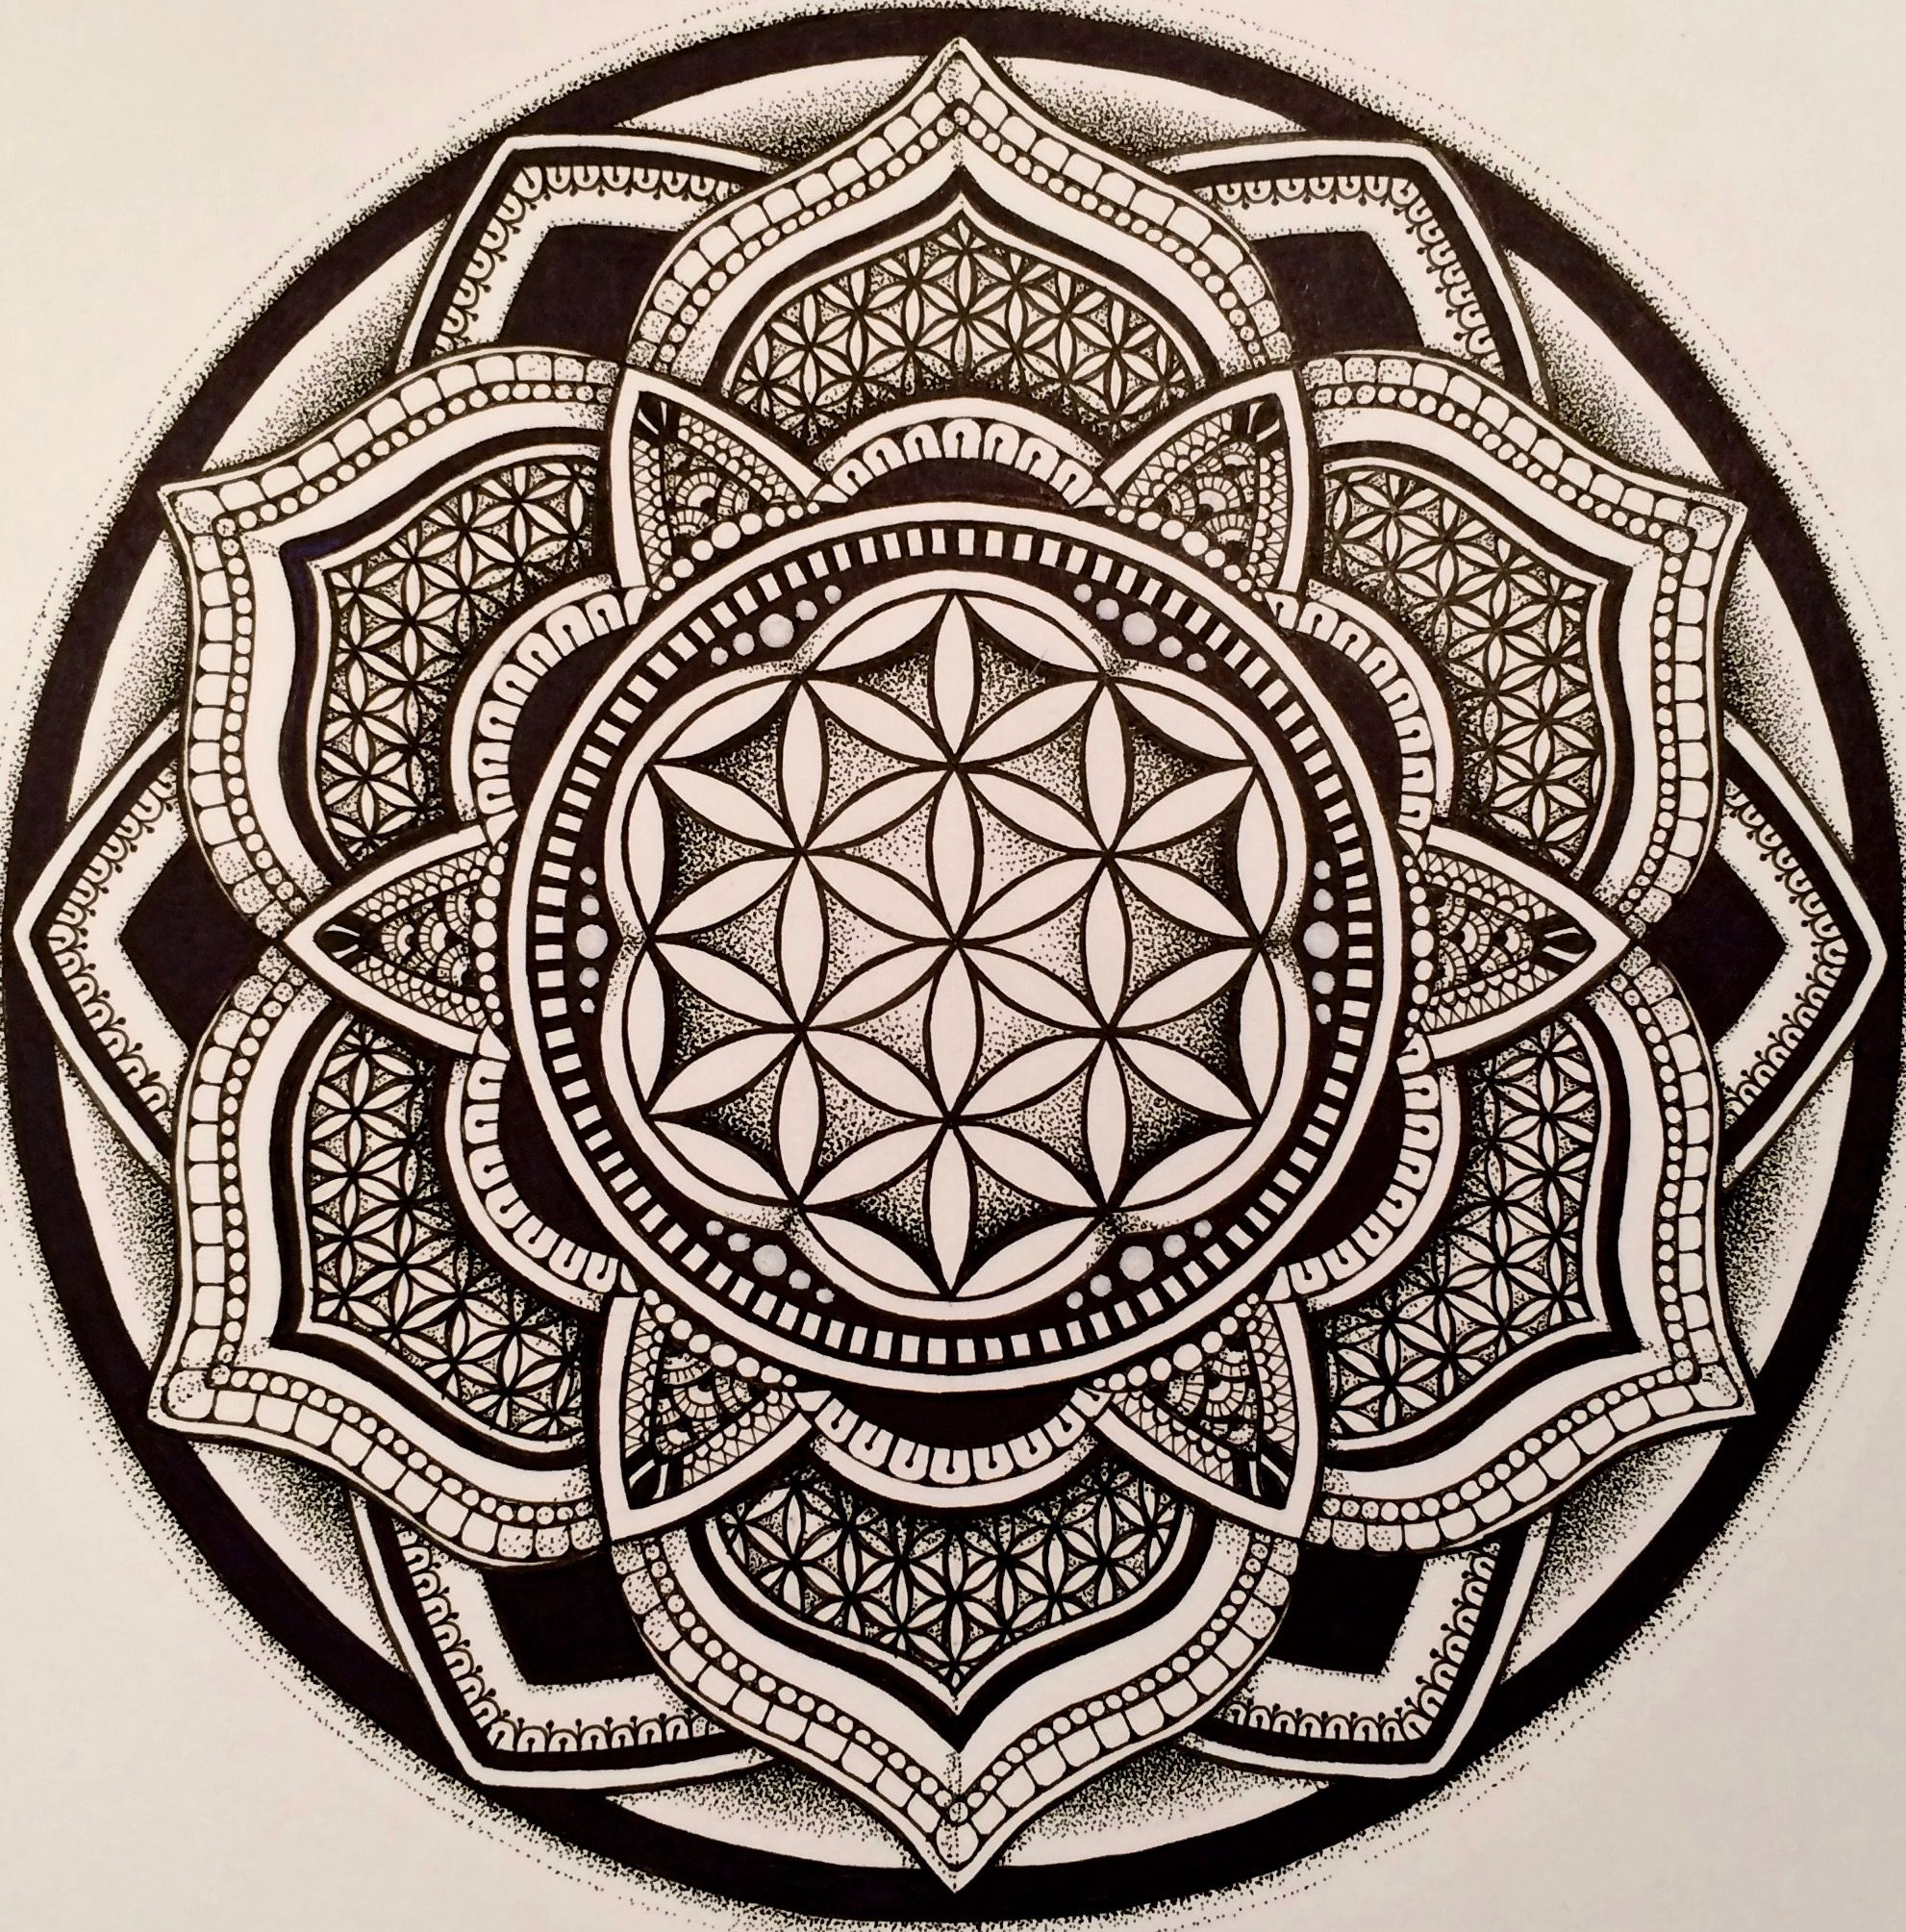 Flower of Life Mandala by Kristy Marie Thomas. (With